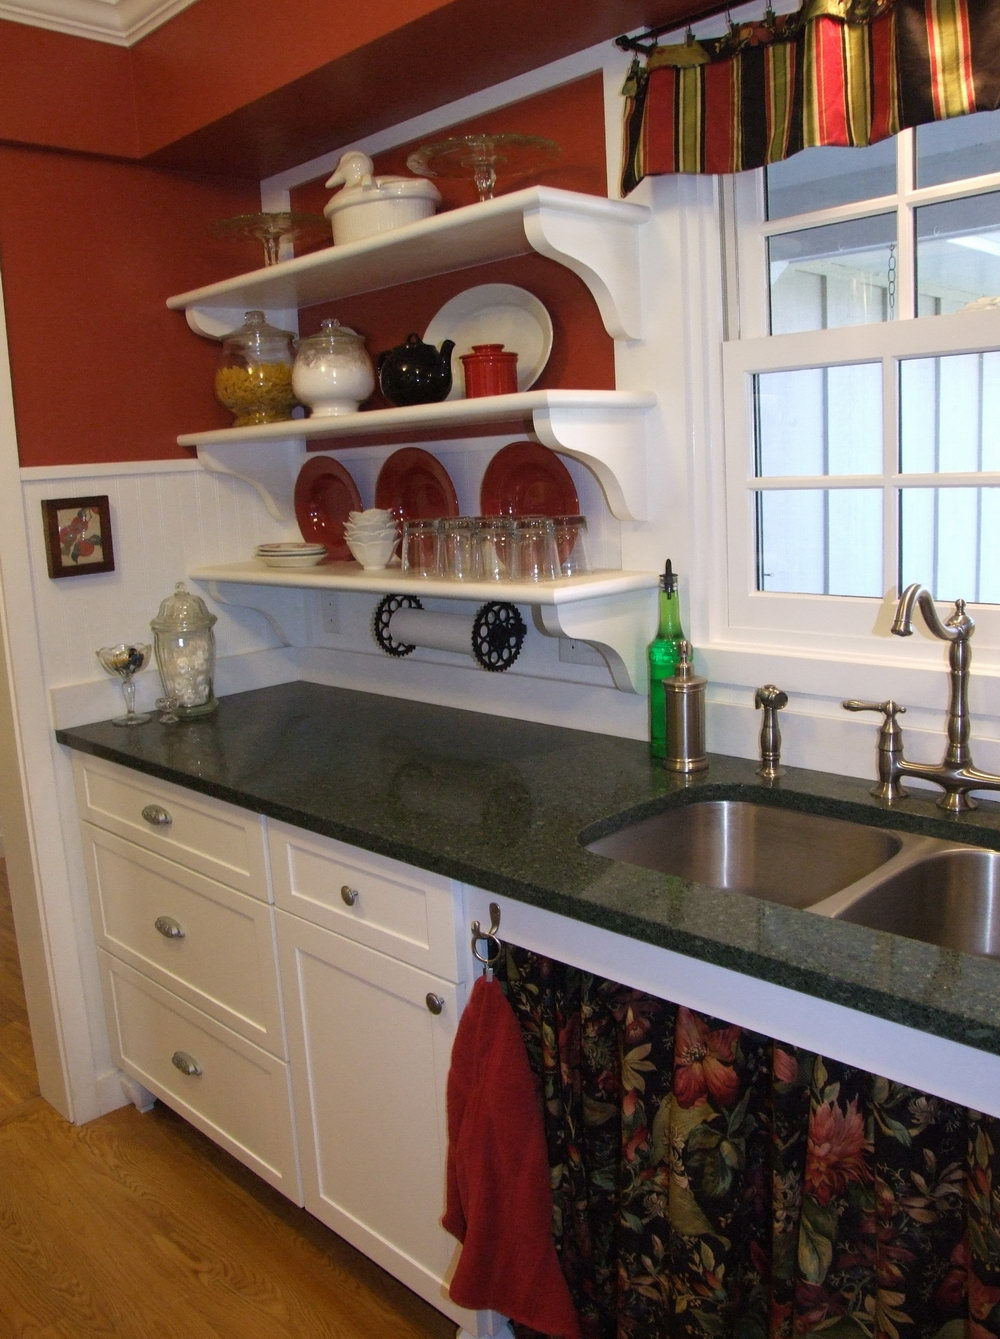 Display Kitchen Cabinets For Sale Ontario